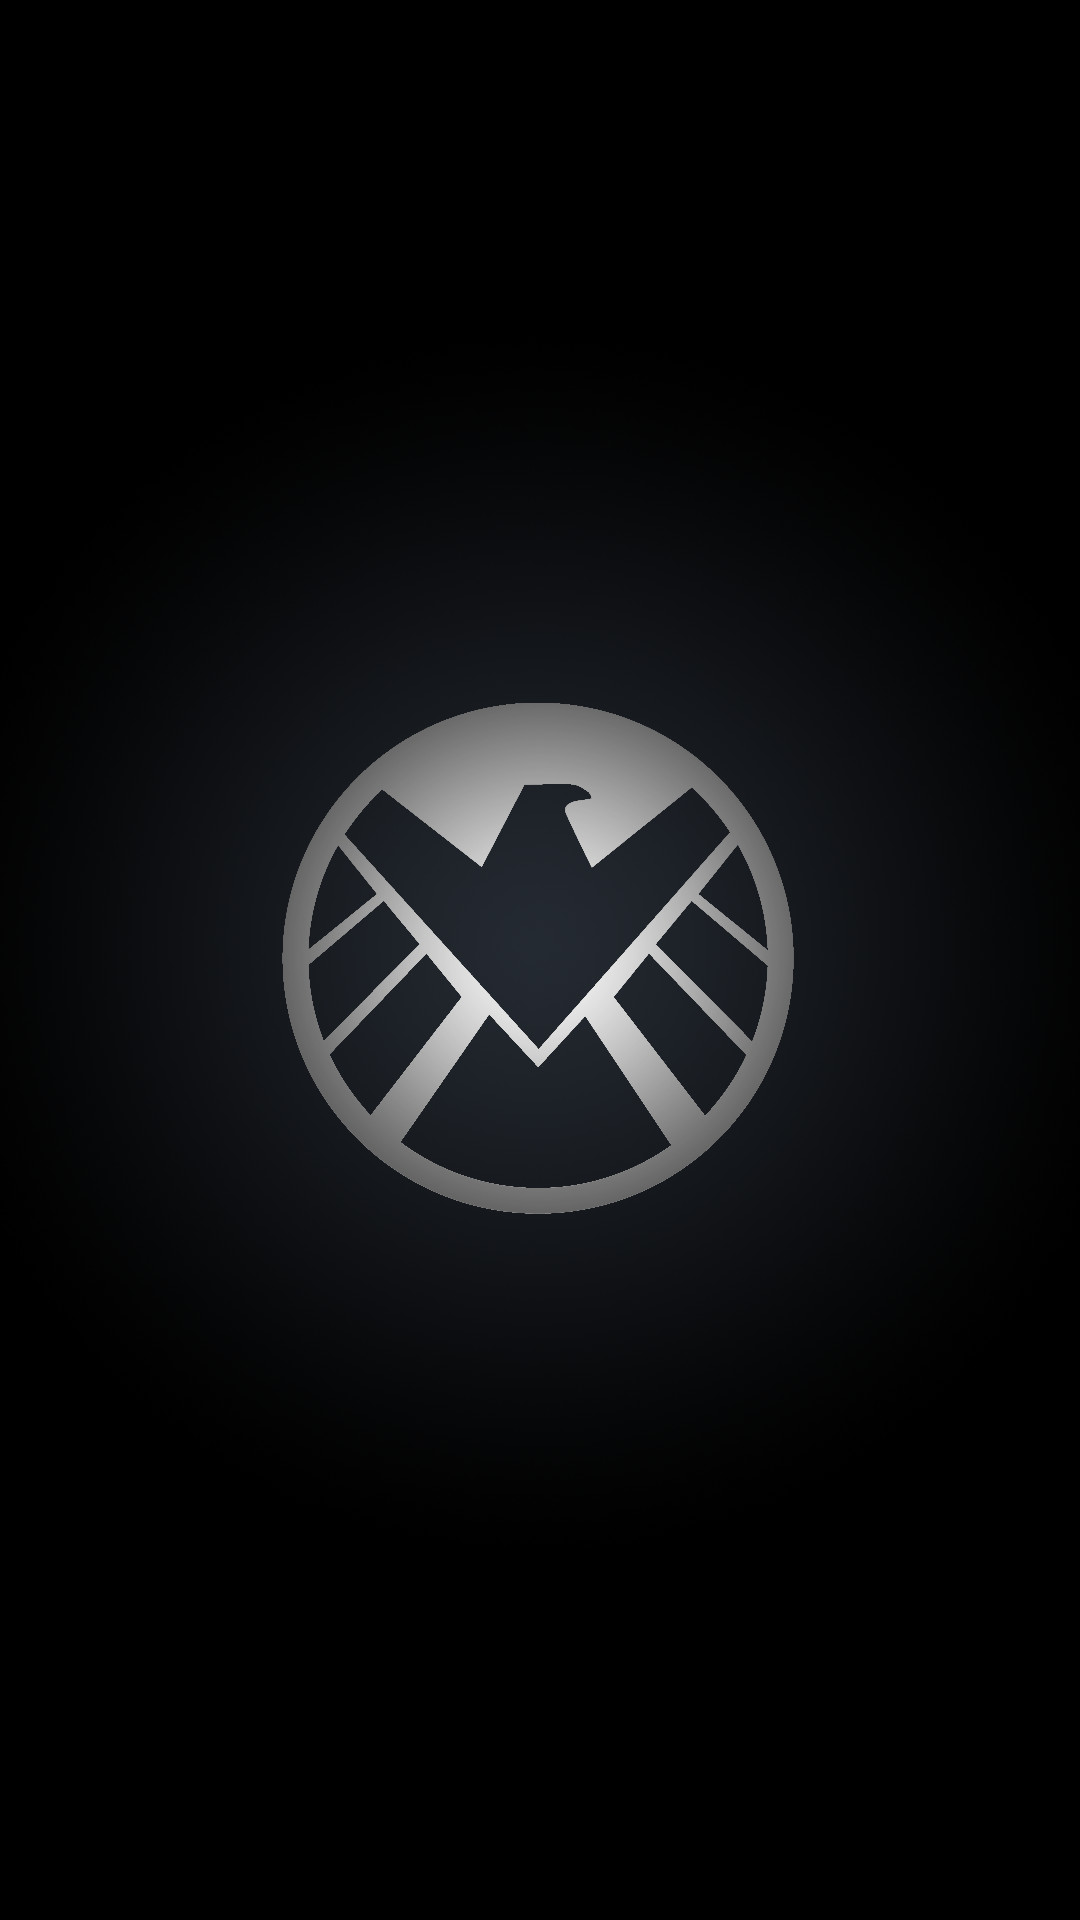 [MOBILE]S.H.I.E.L.D. for phone or tablet (1080×1920) …